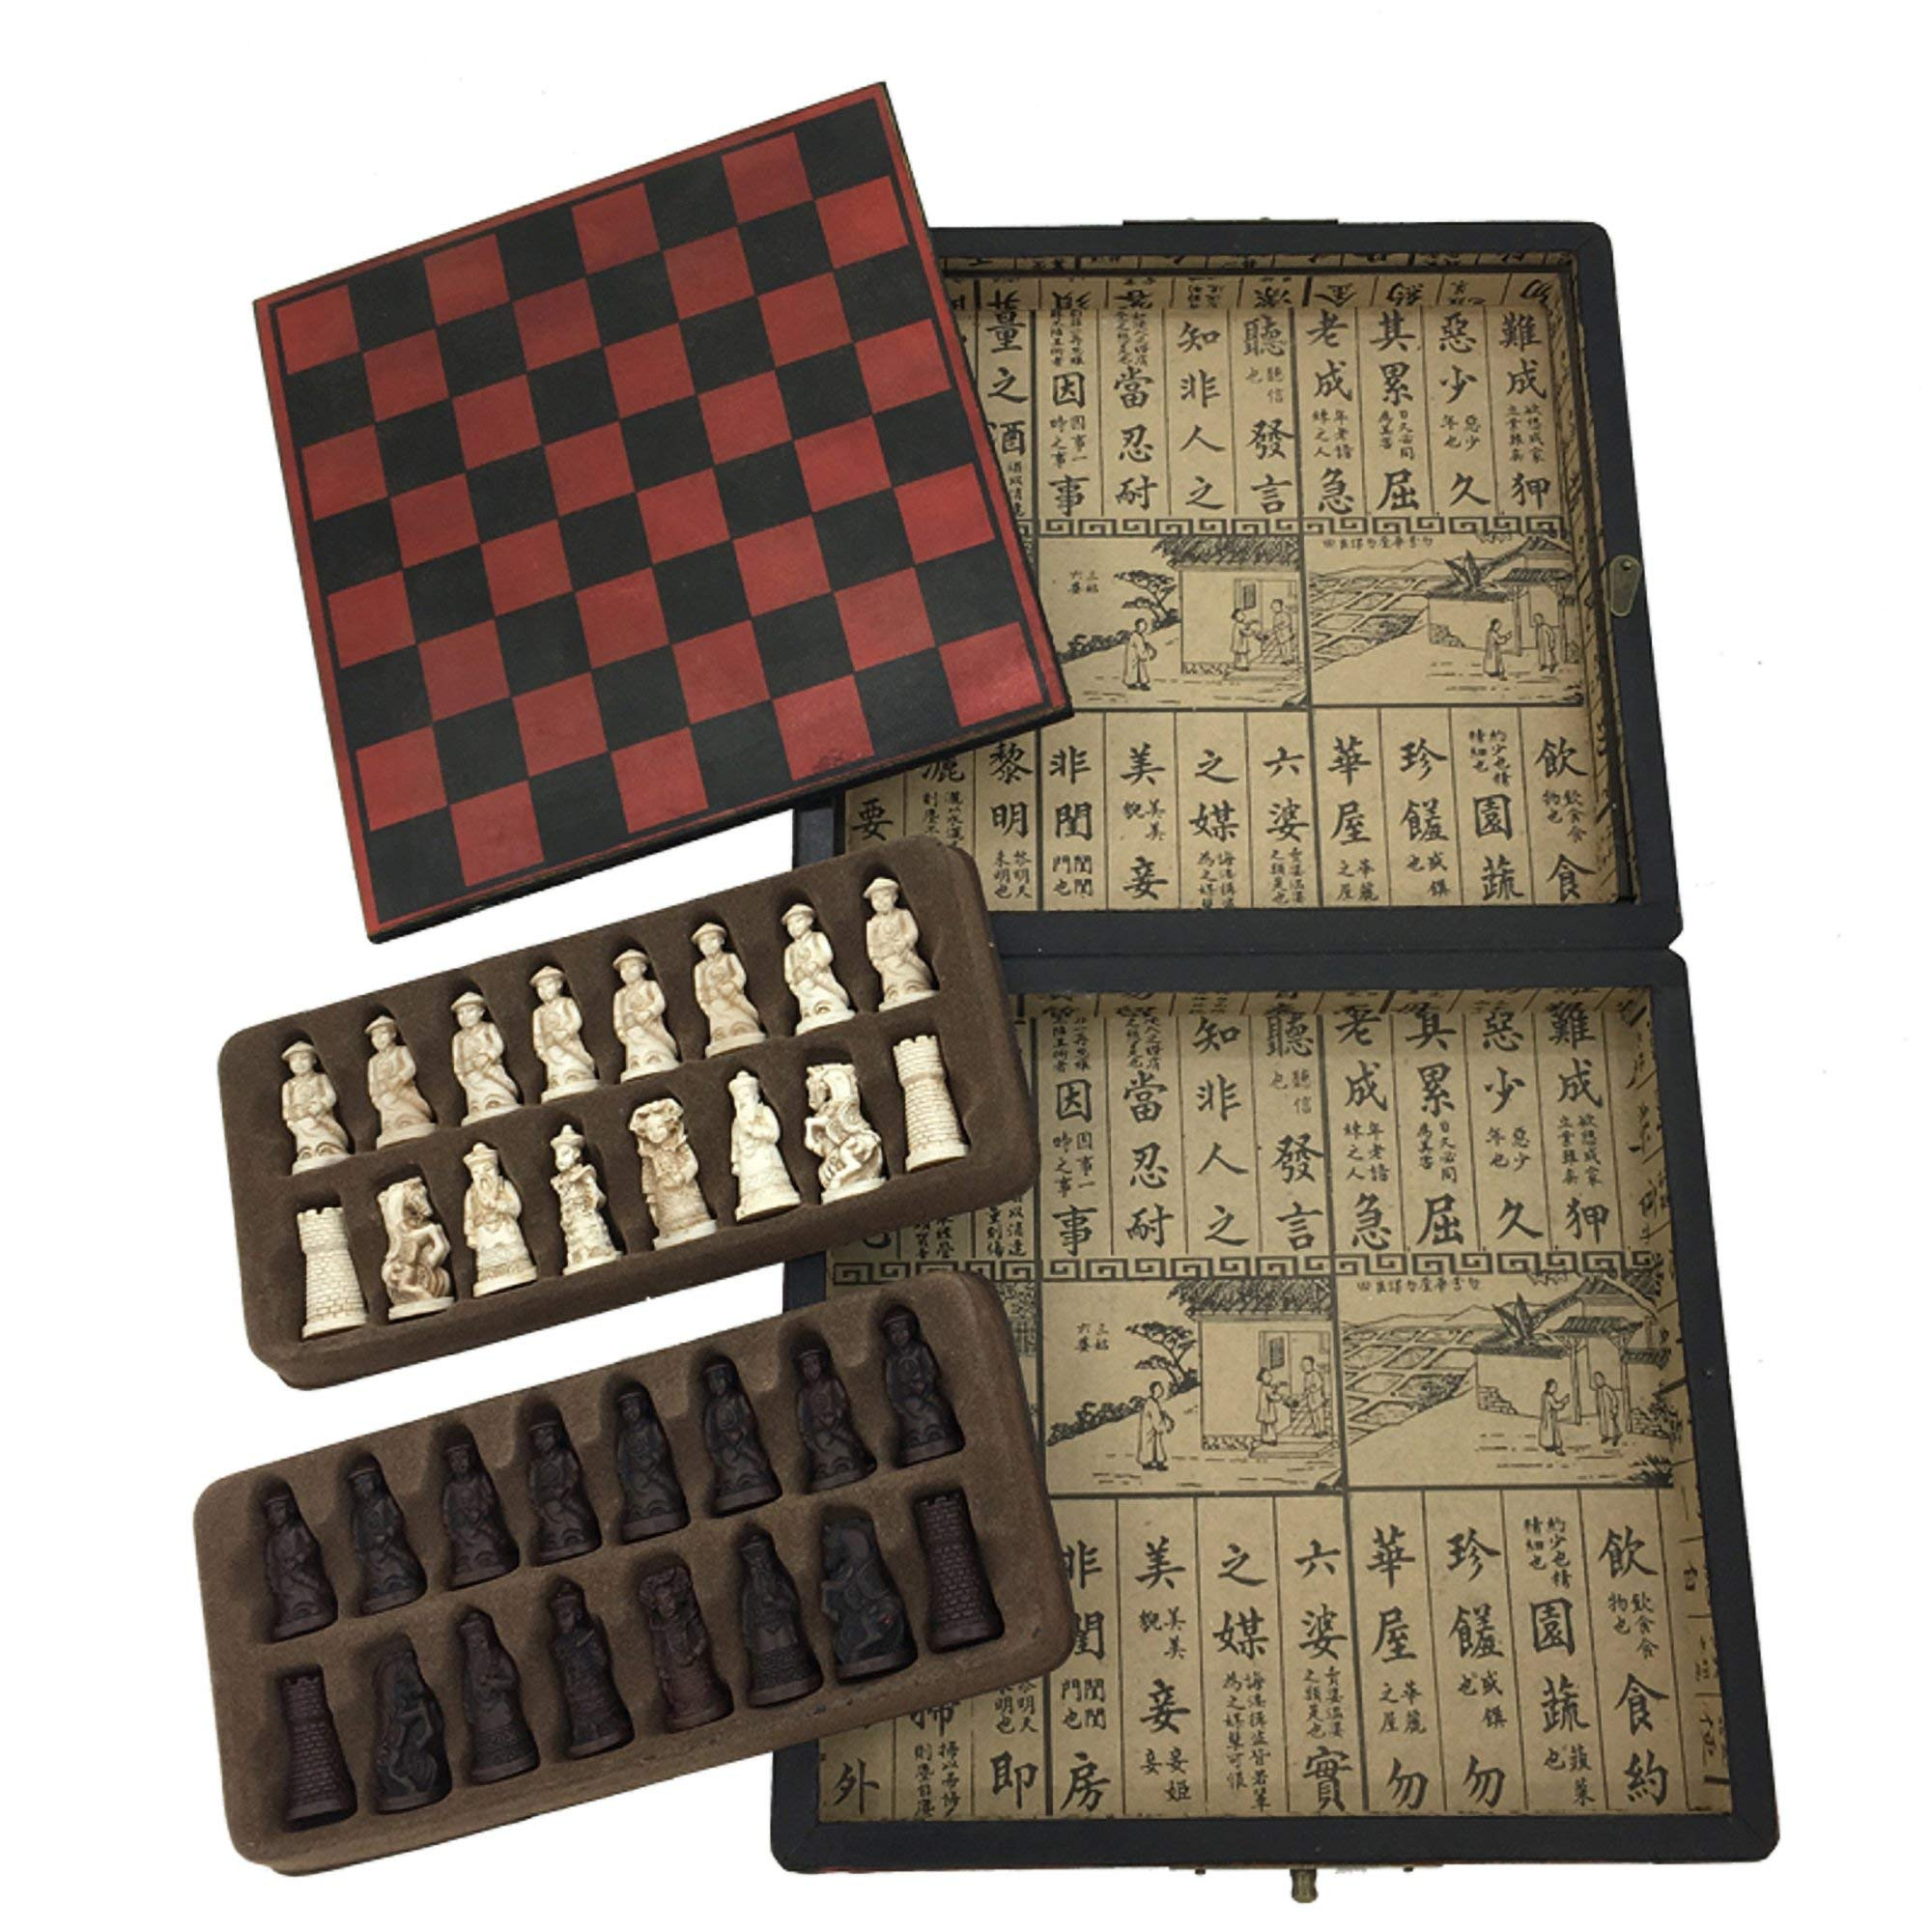 Classic Unique Antique Chess Set Wooden Storage Box Vintage Retro Chess Gifts for Men Outdoor Travel Table Games